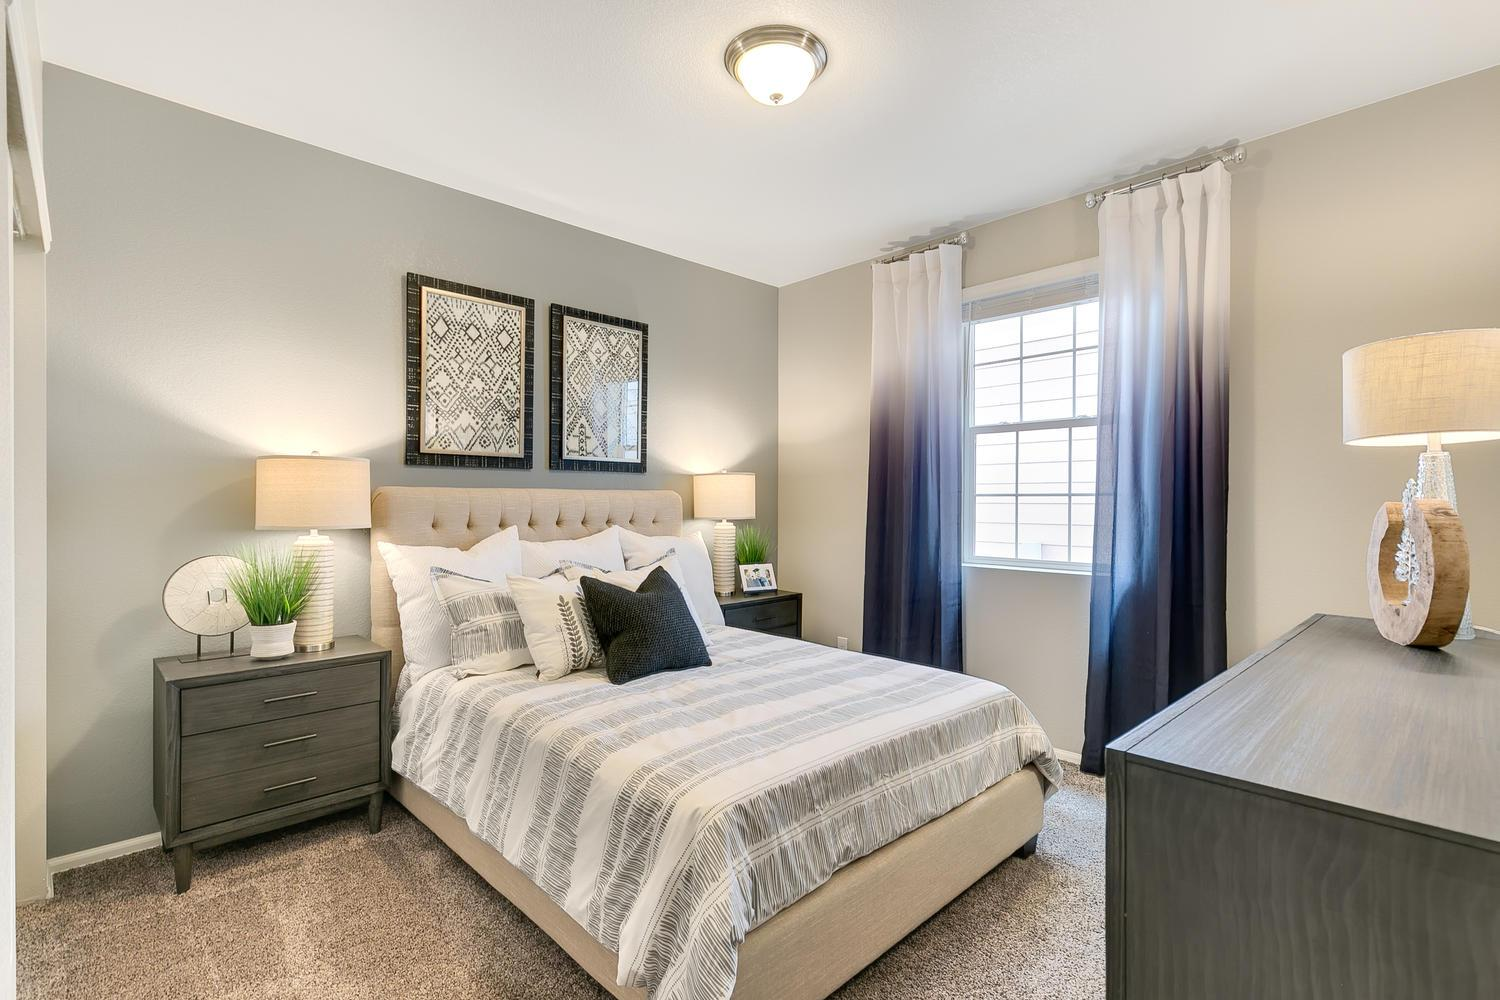 Bedroom featured in the OSAGE By D.R. Horton in Greeley, CO